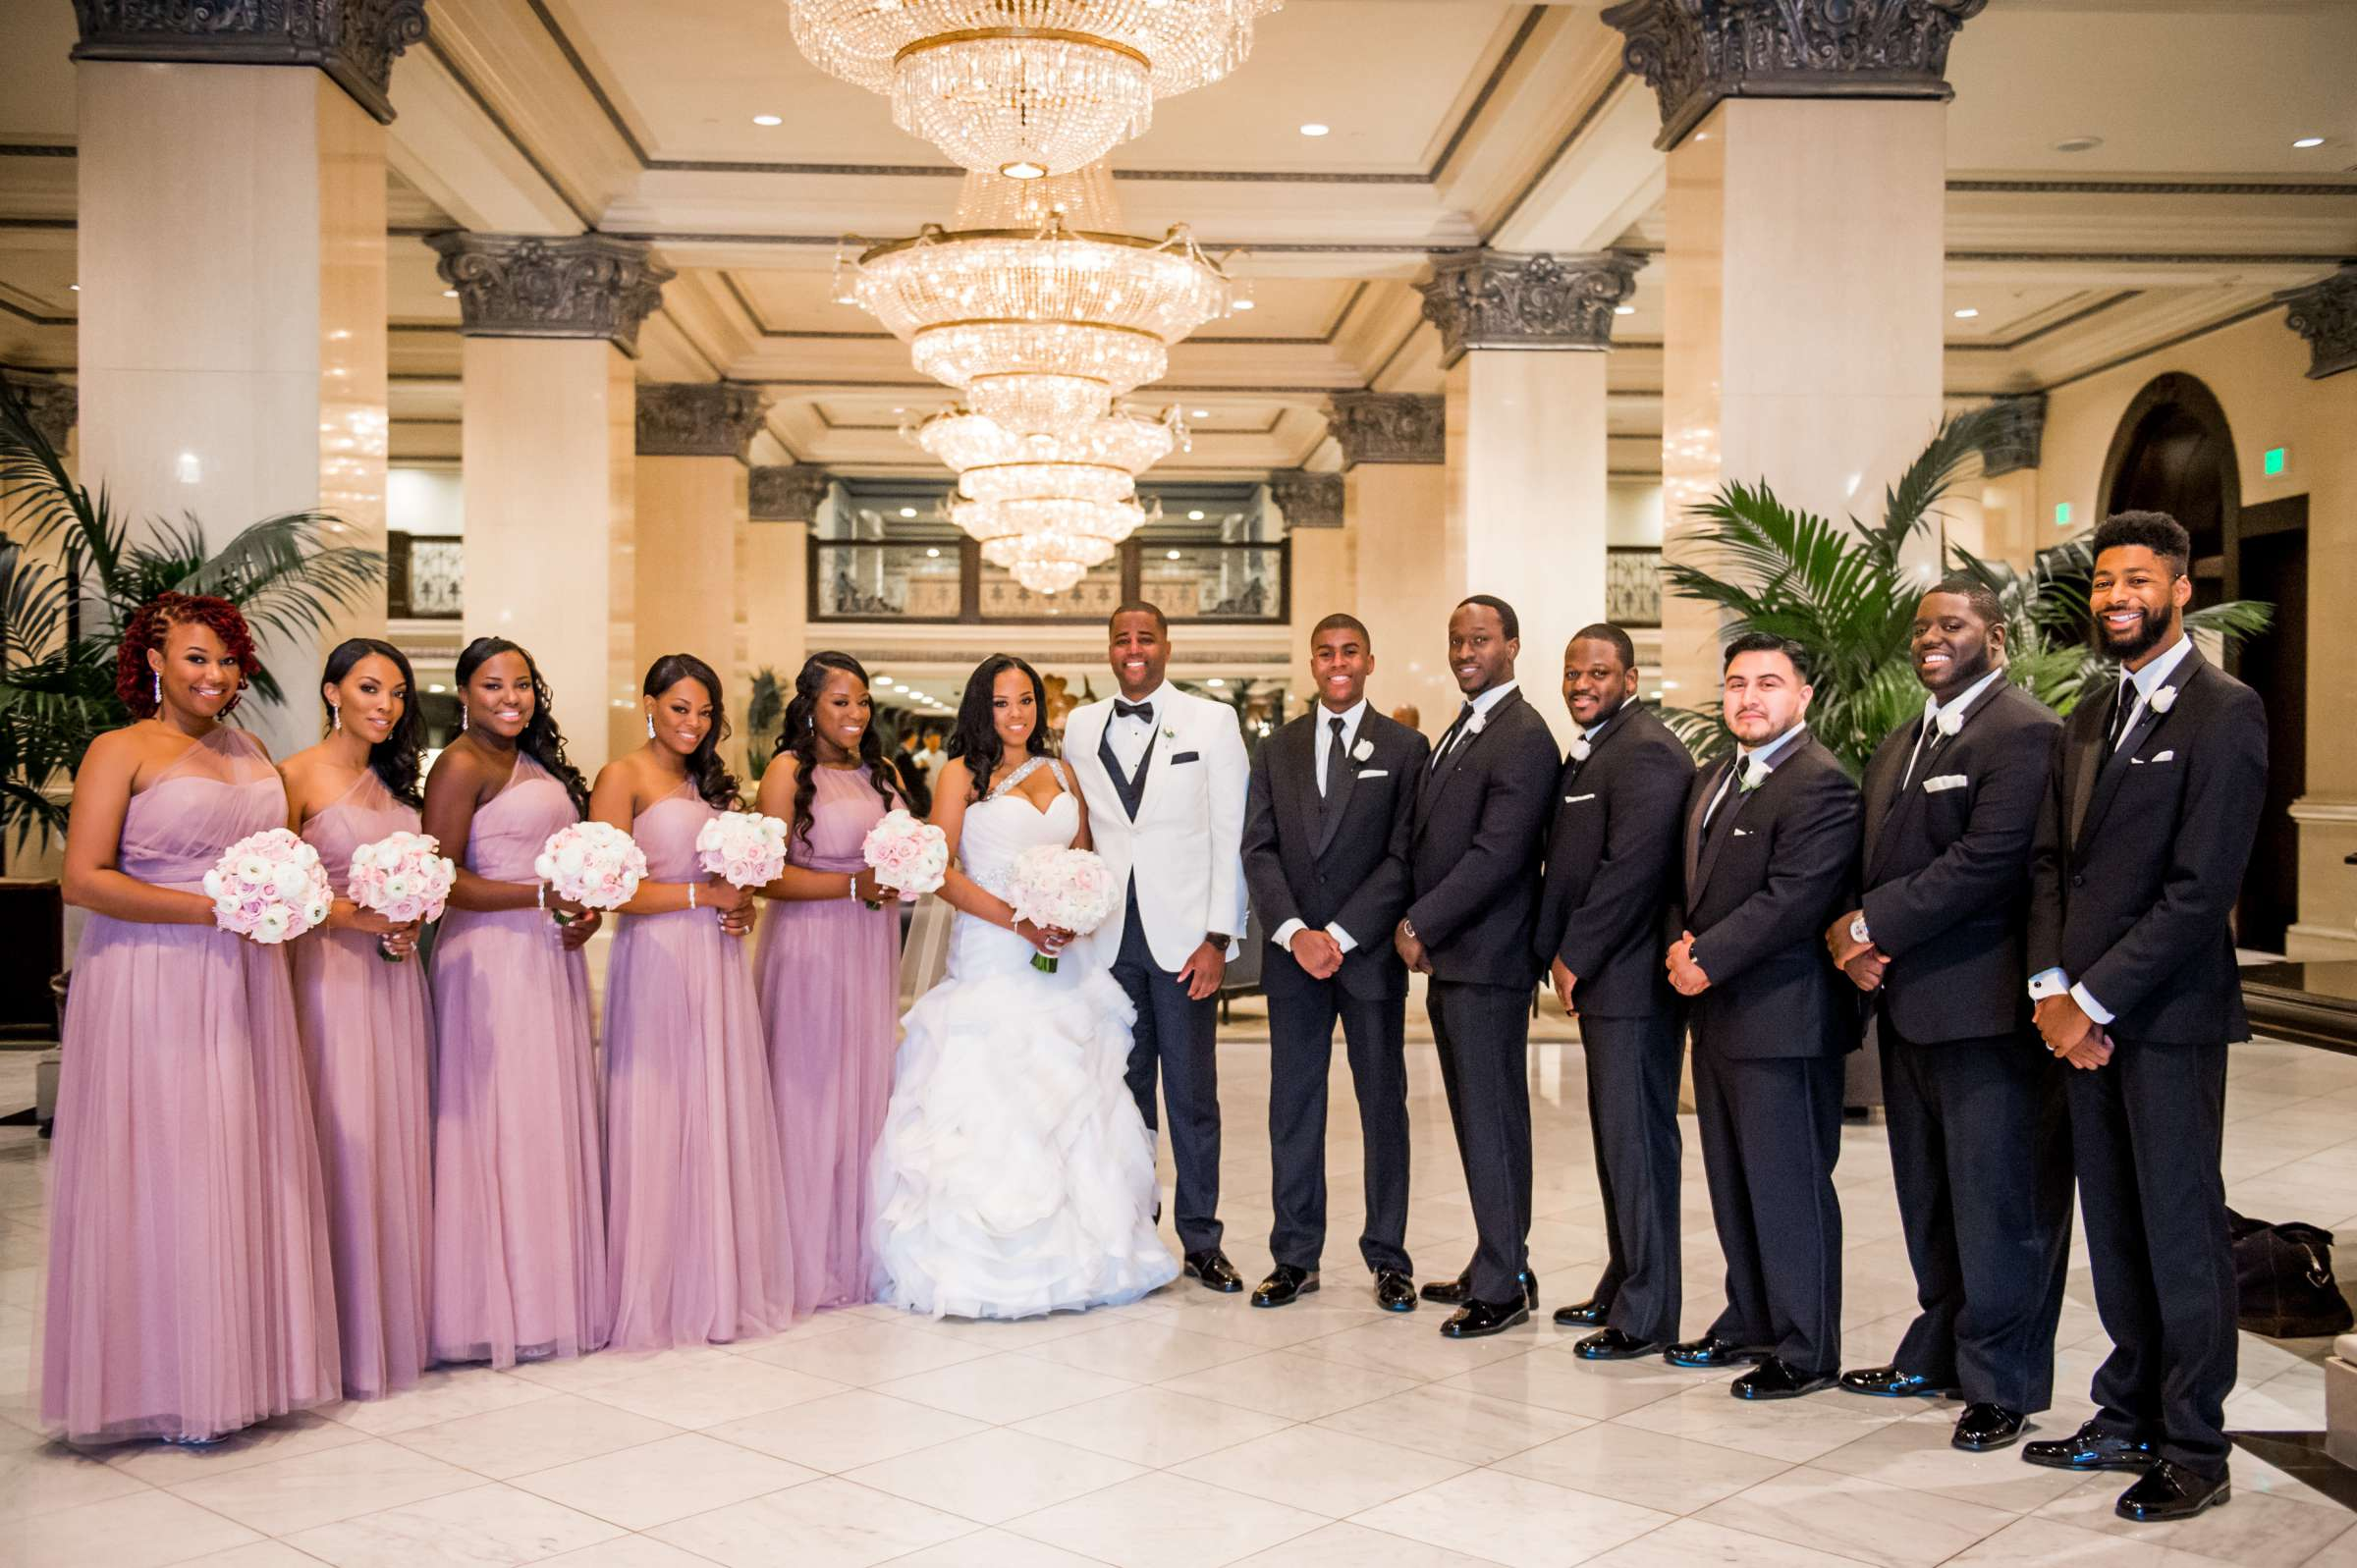 Coronado Community Center Wedding coordinated by First Comes Love Weddings & Events, Nikia and Charles Wedding Photo #44 by True Photography